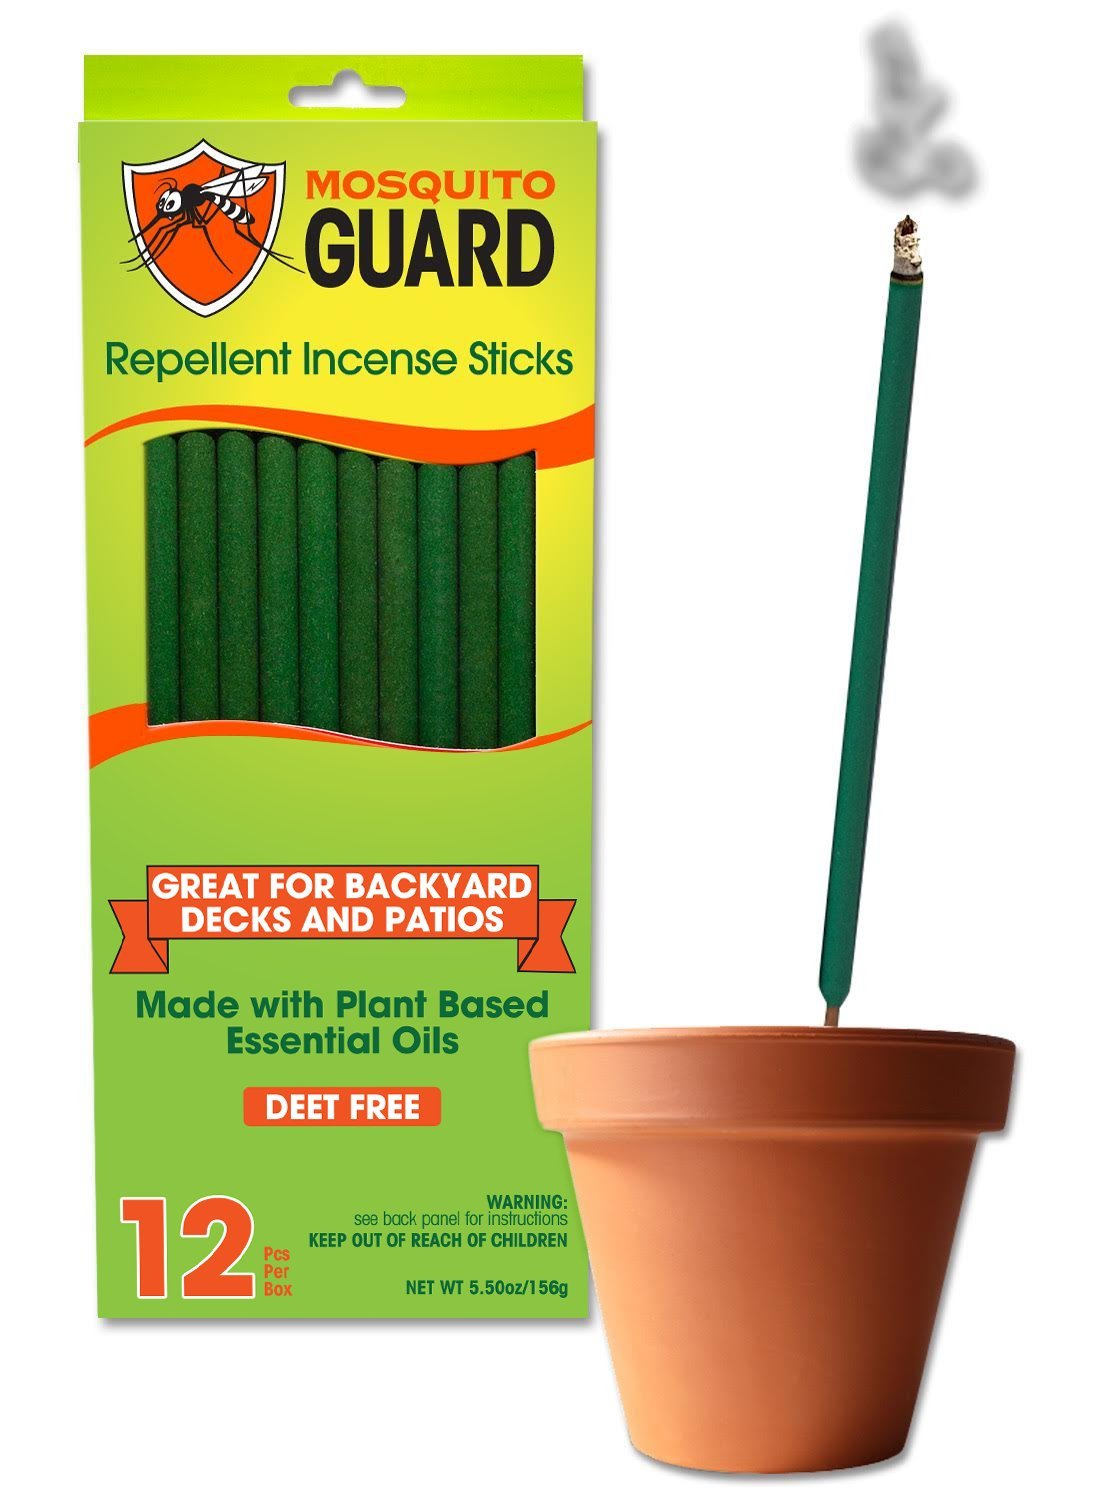 Mosquito Guard Incense Repellent Sticks – 12 inch Incense Sticks Made with Natural Plant Based Ingredients: Citronella, Lemongrass & Rosemary Oil - 12 Sticks per Box by Mosquito Guard